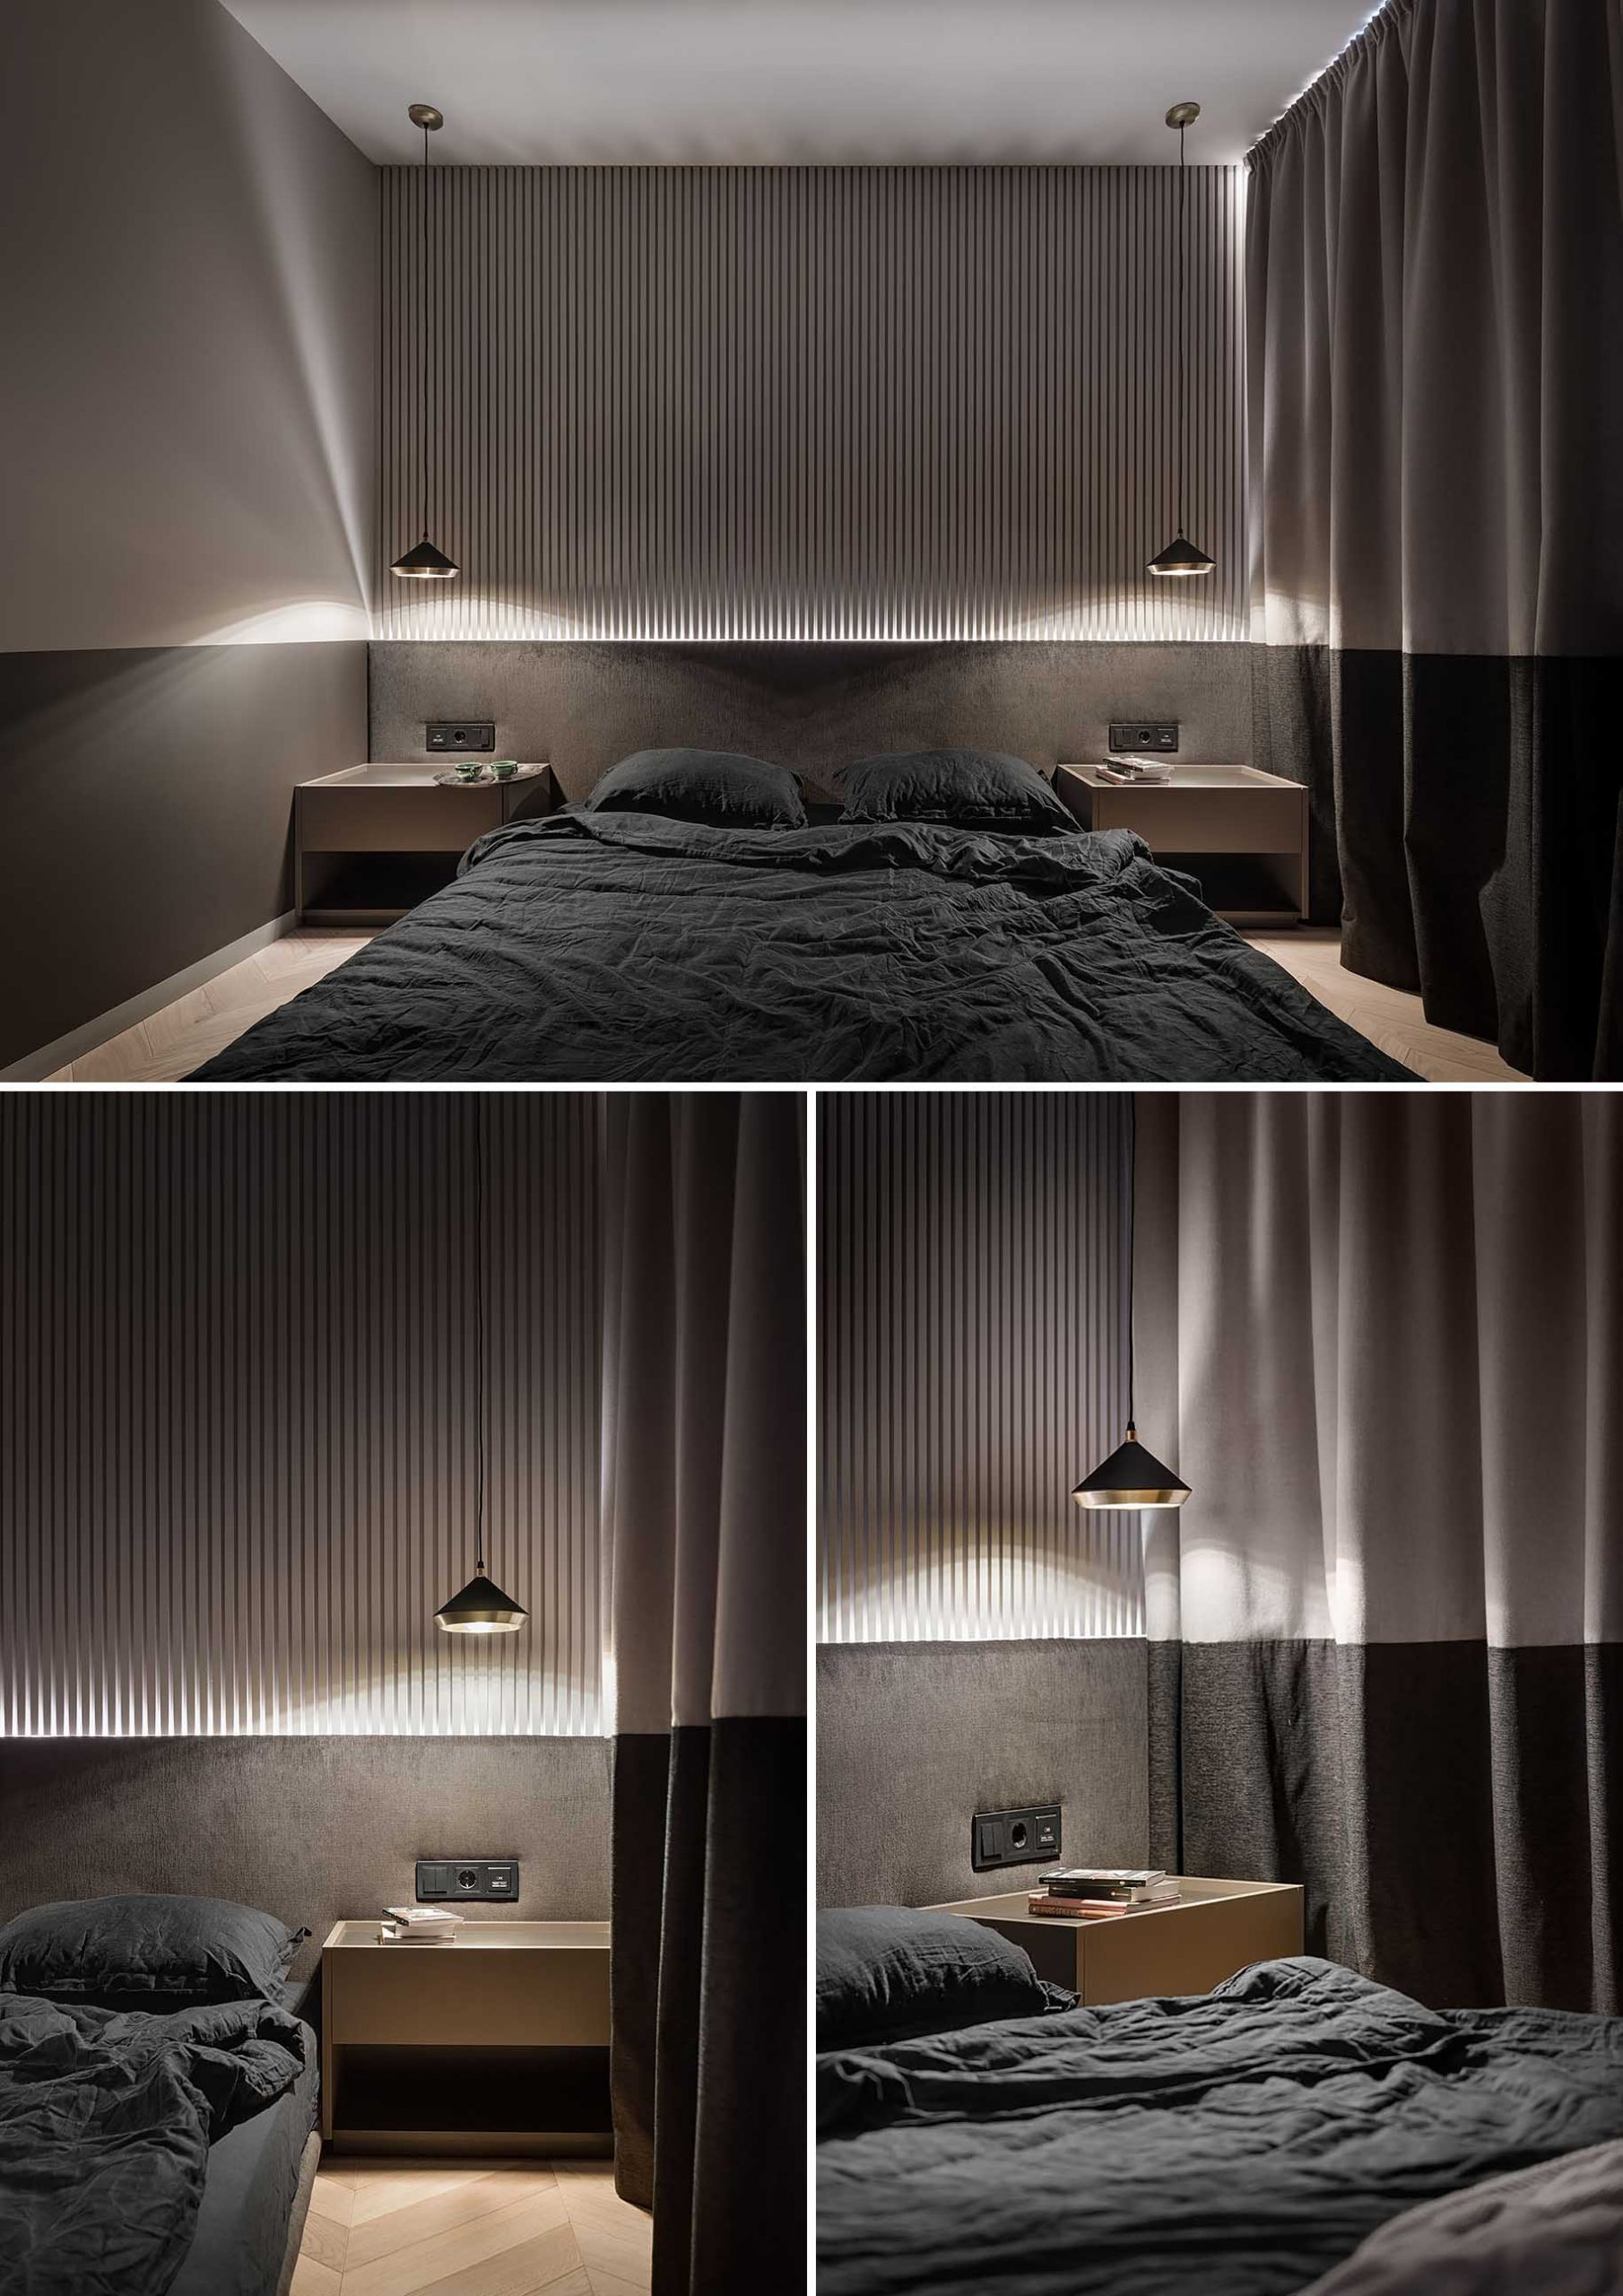 A two-tone bedroom includes different shades of chocolate and beige, a textured accent wall made from plaster, an upholstered wall-to-wall headboard, and two-tone curtains.